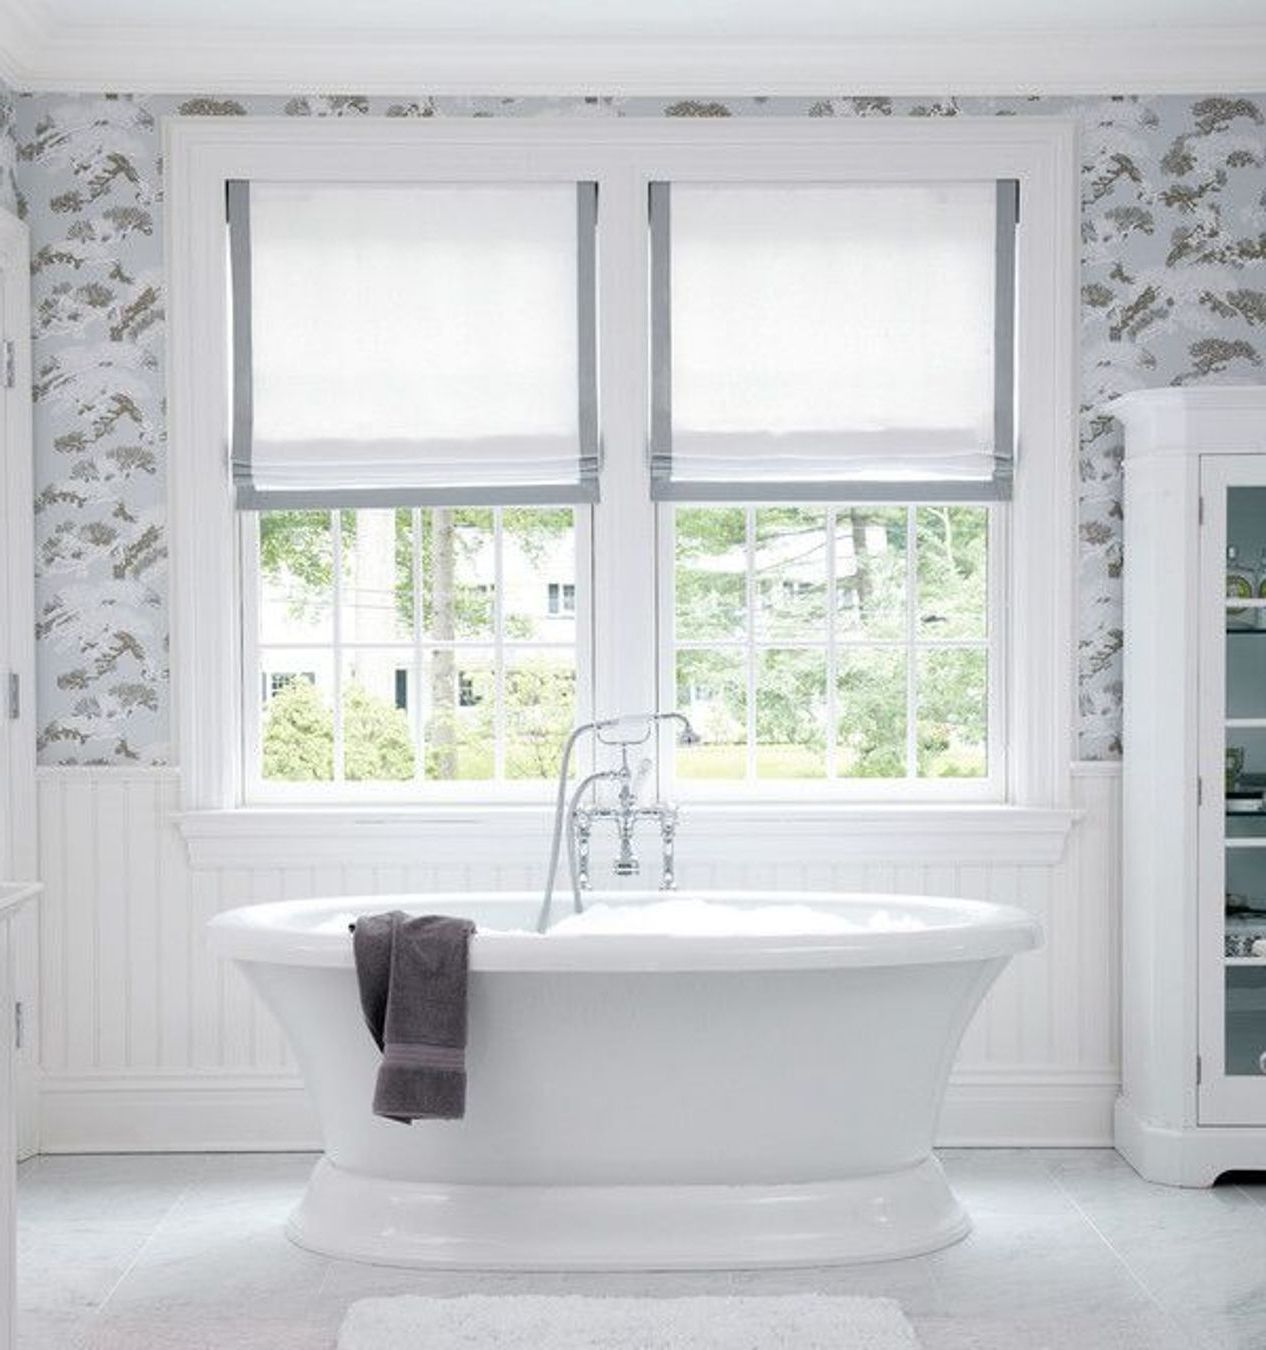 Beautiful Bathroom Will Dusty Blue And Gray And White Patterned Wallpaper,  White Wainscoting, White Part 35